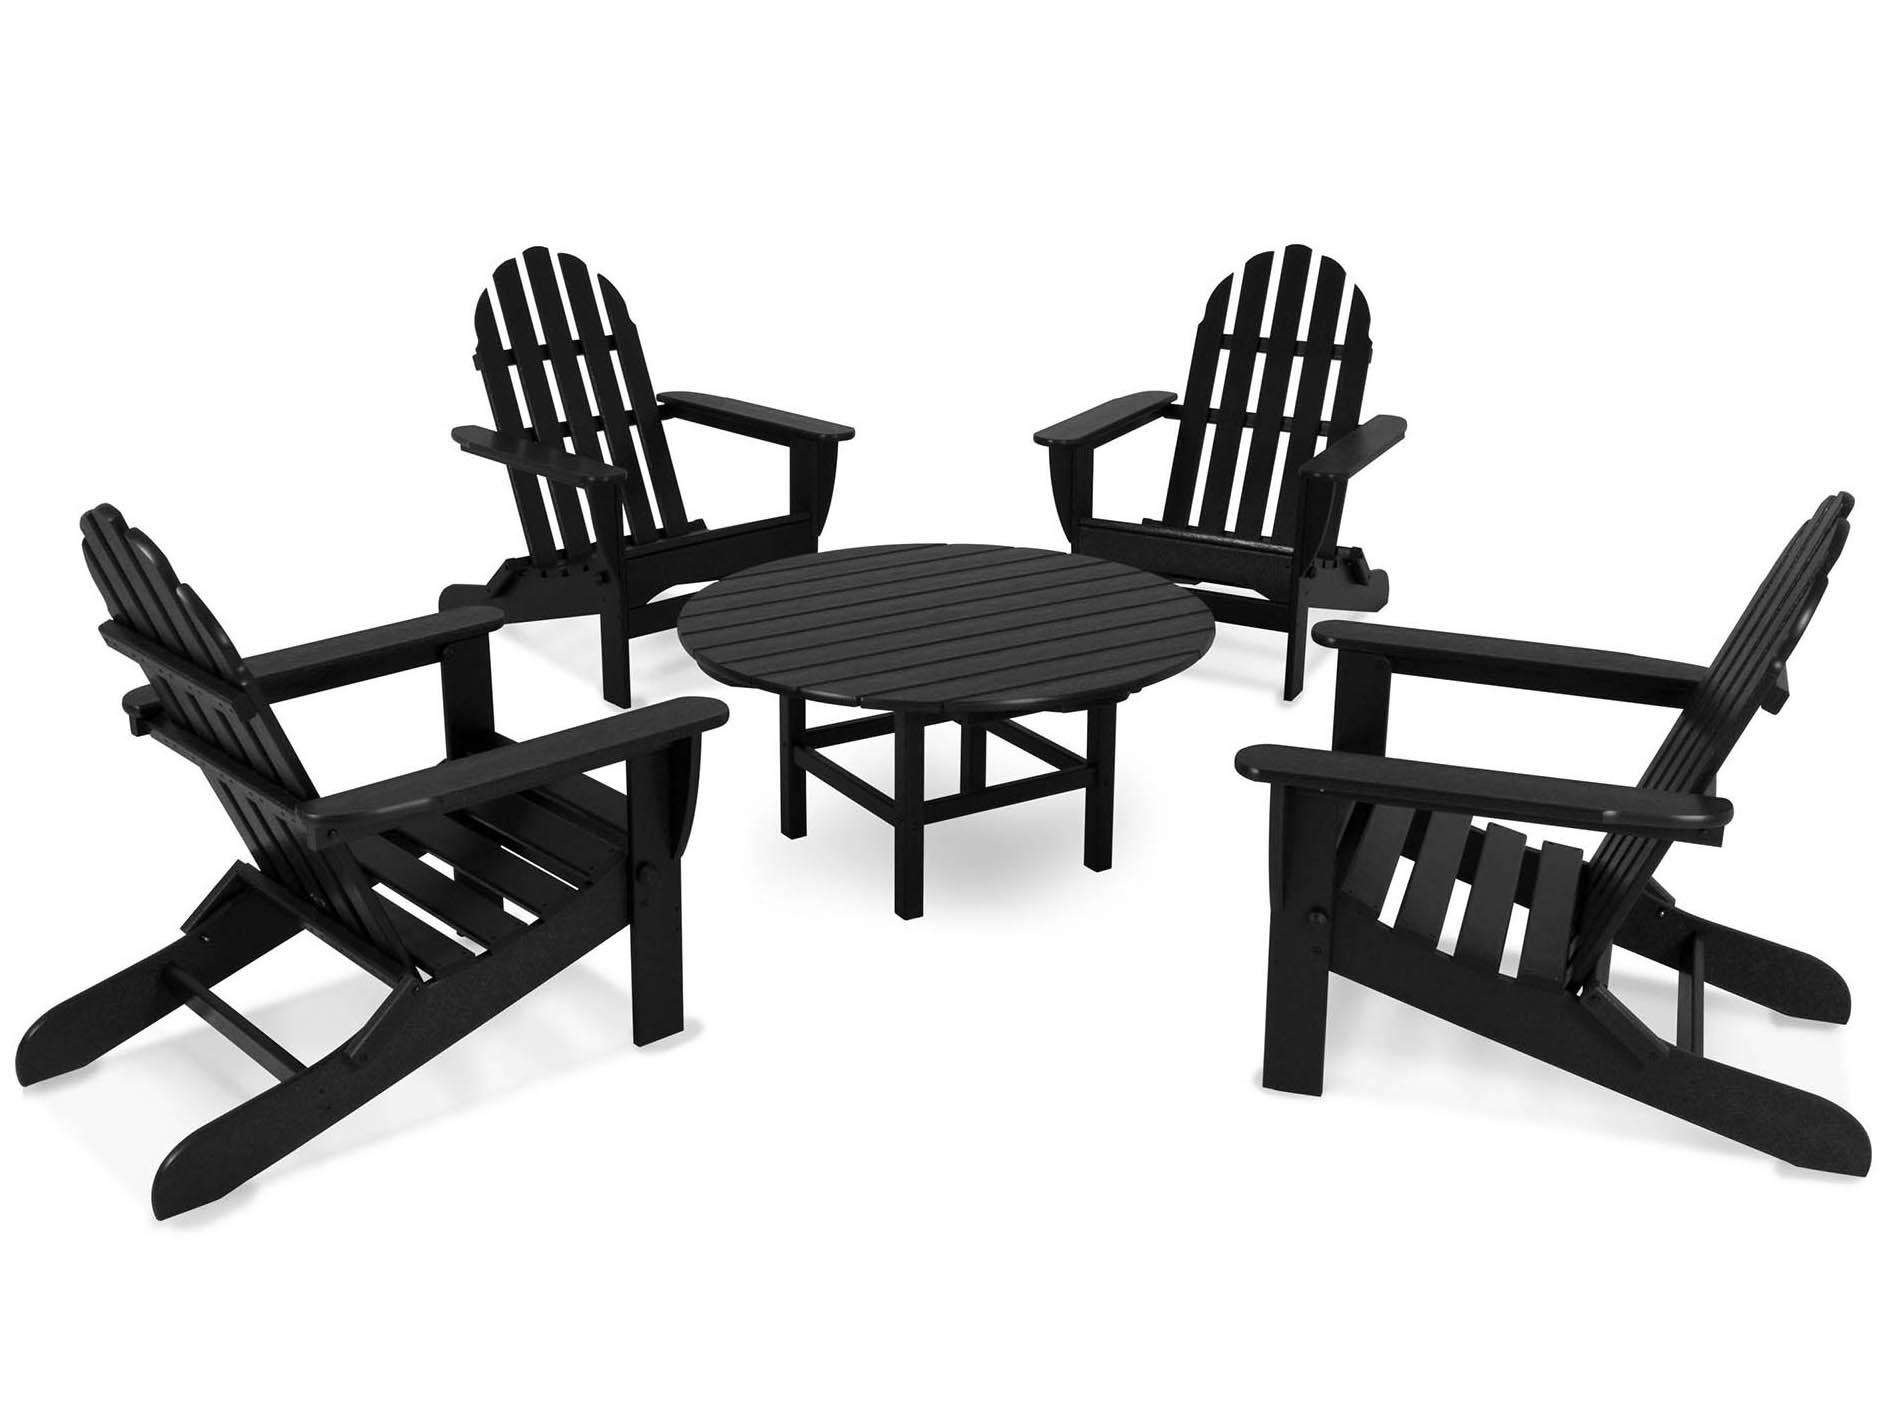 Lovable Classic Folding Adirondack Conversation Set Product Photo